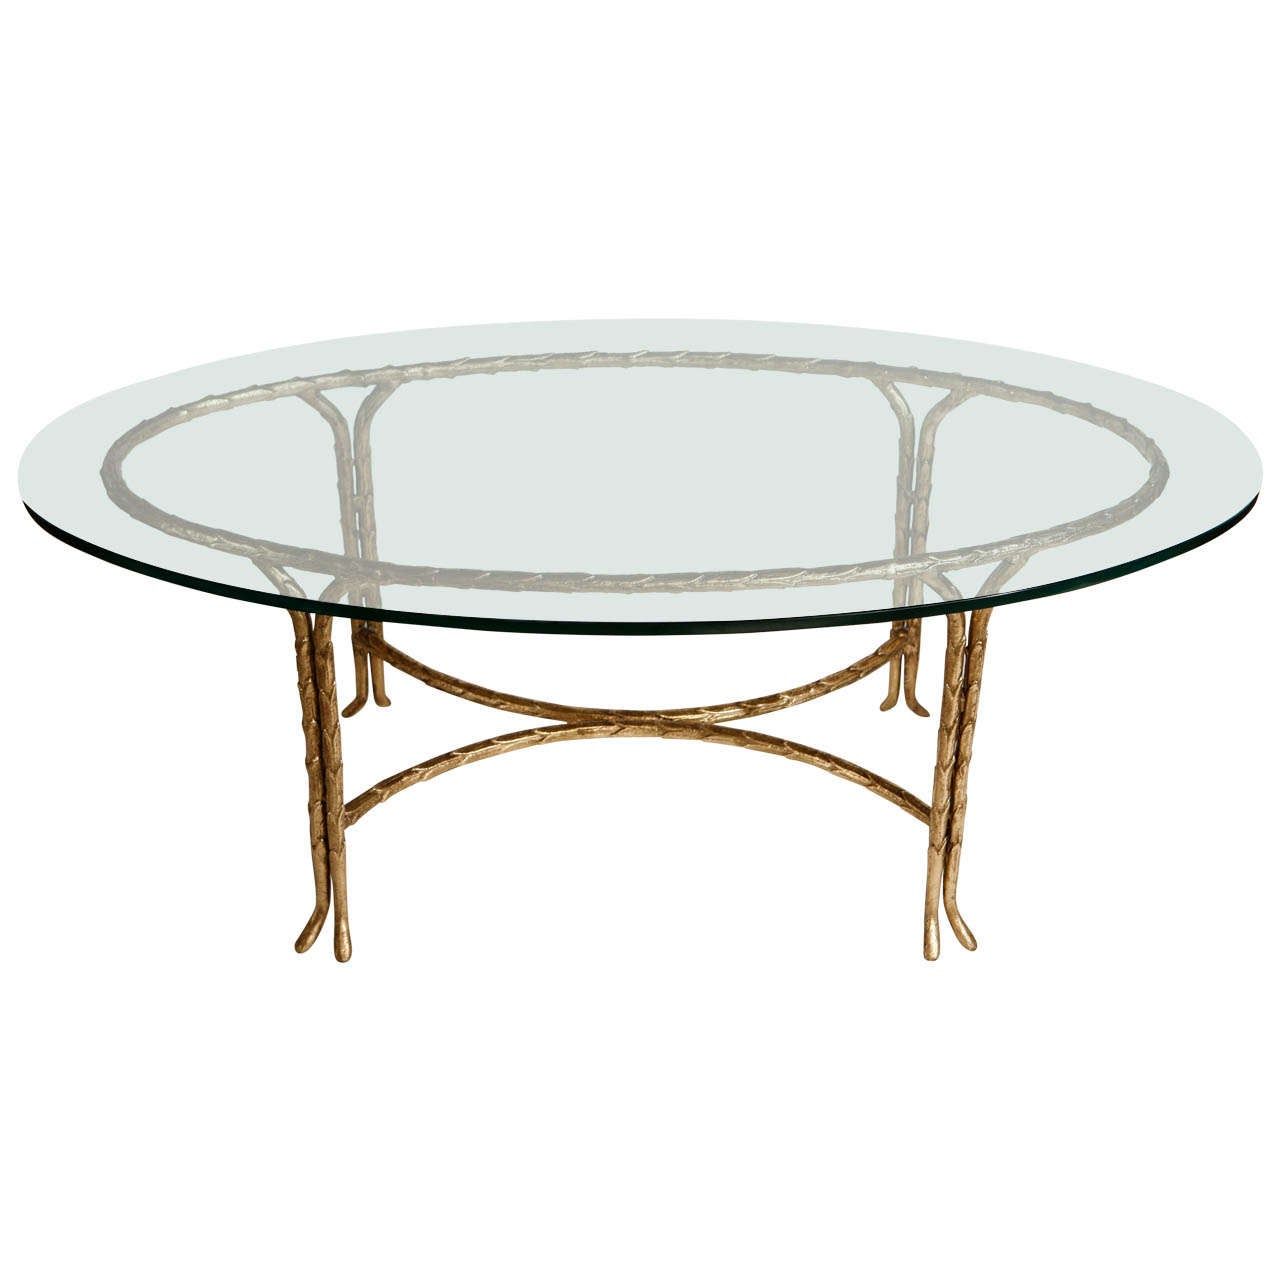 Gold Leafed Maison Bagues Oval Coffee Table At 1stdibs